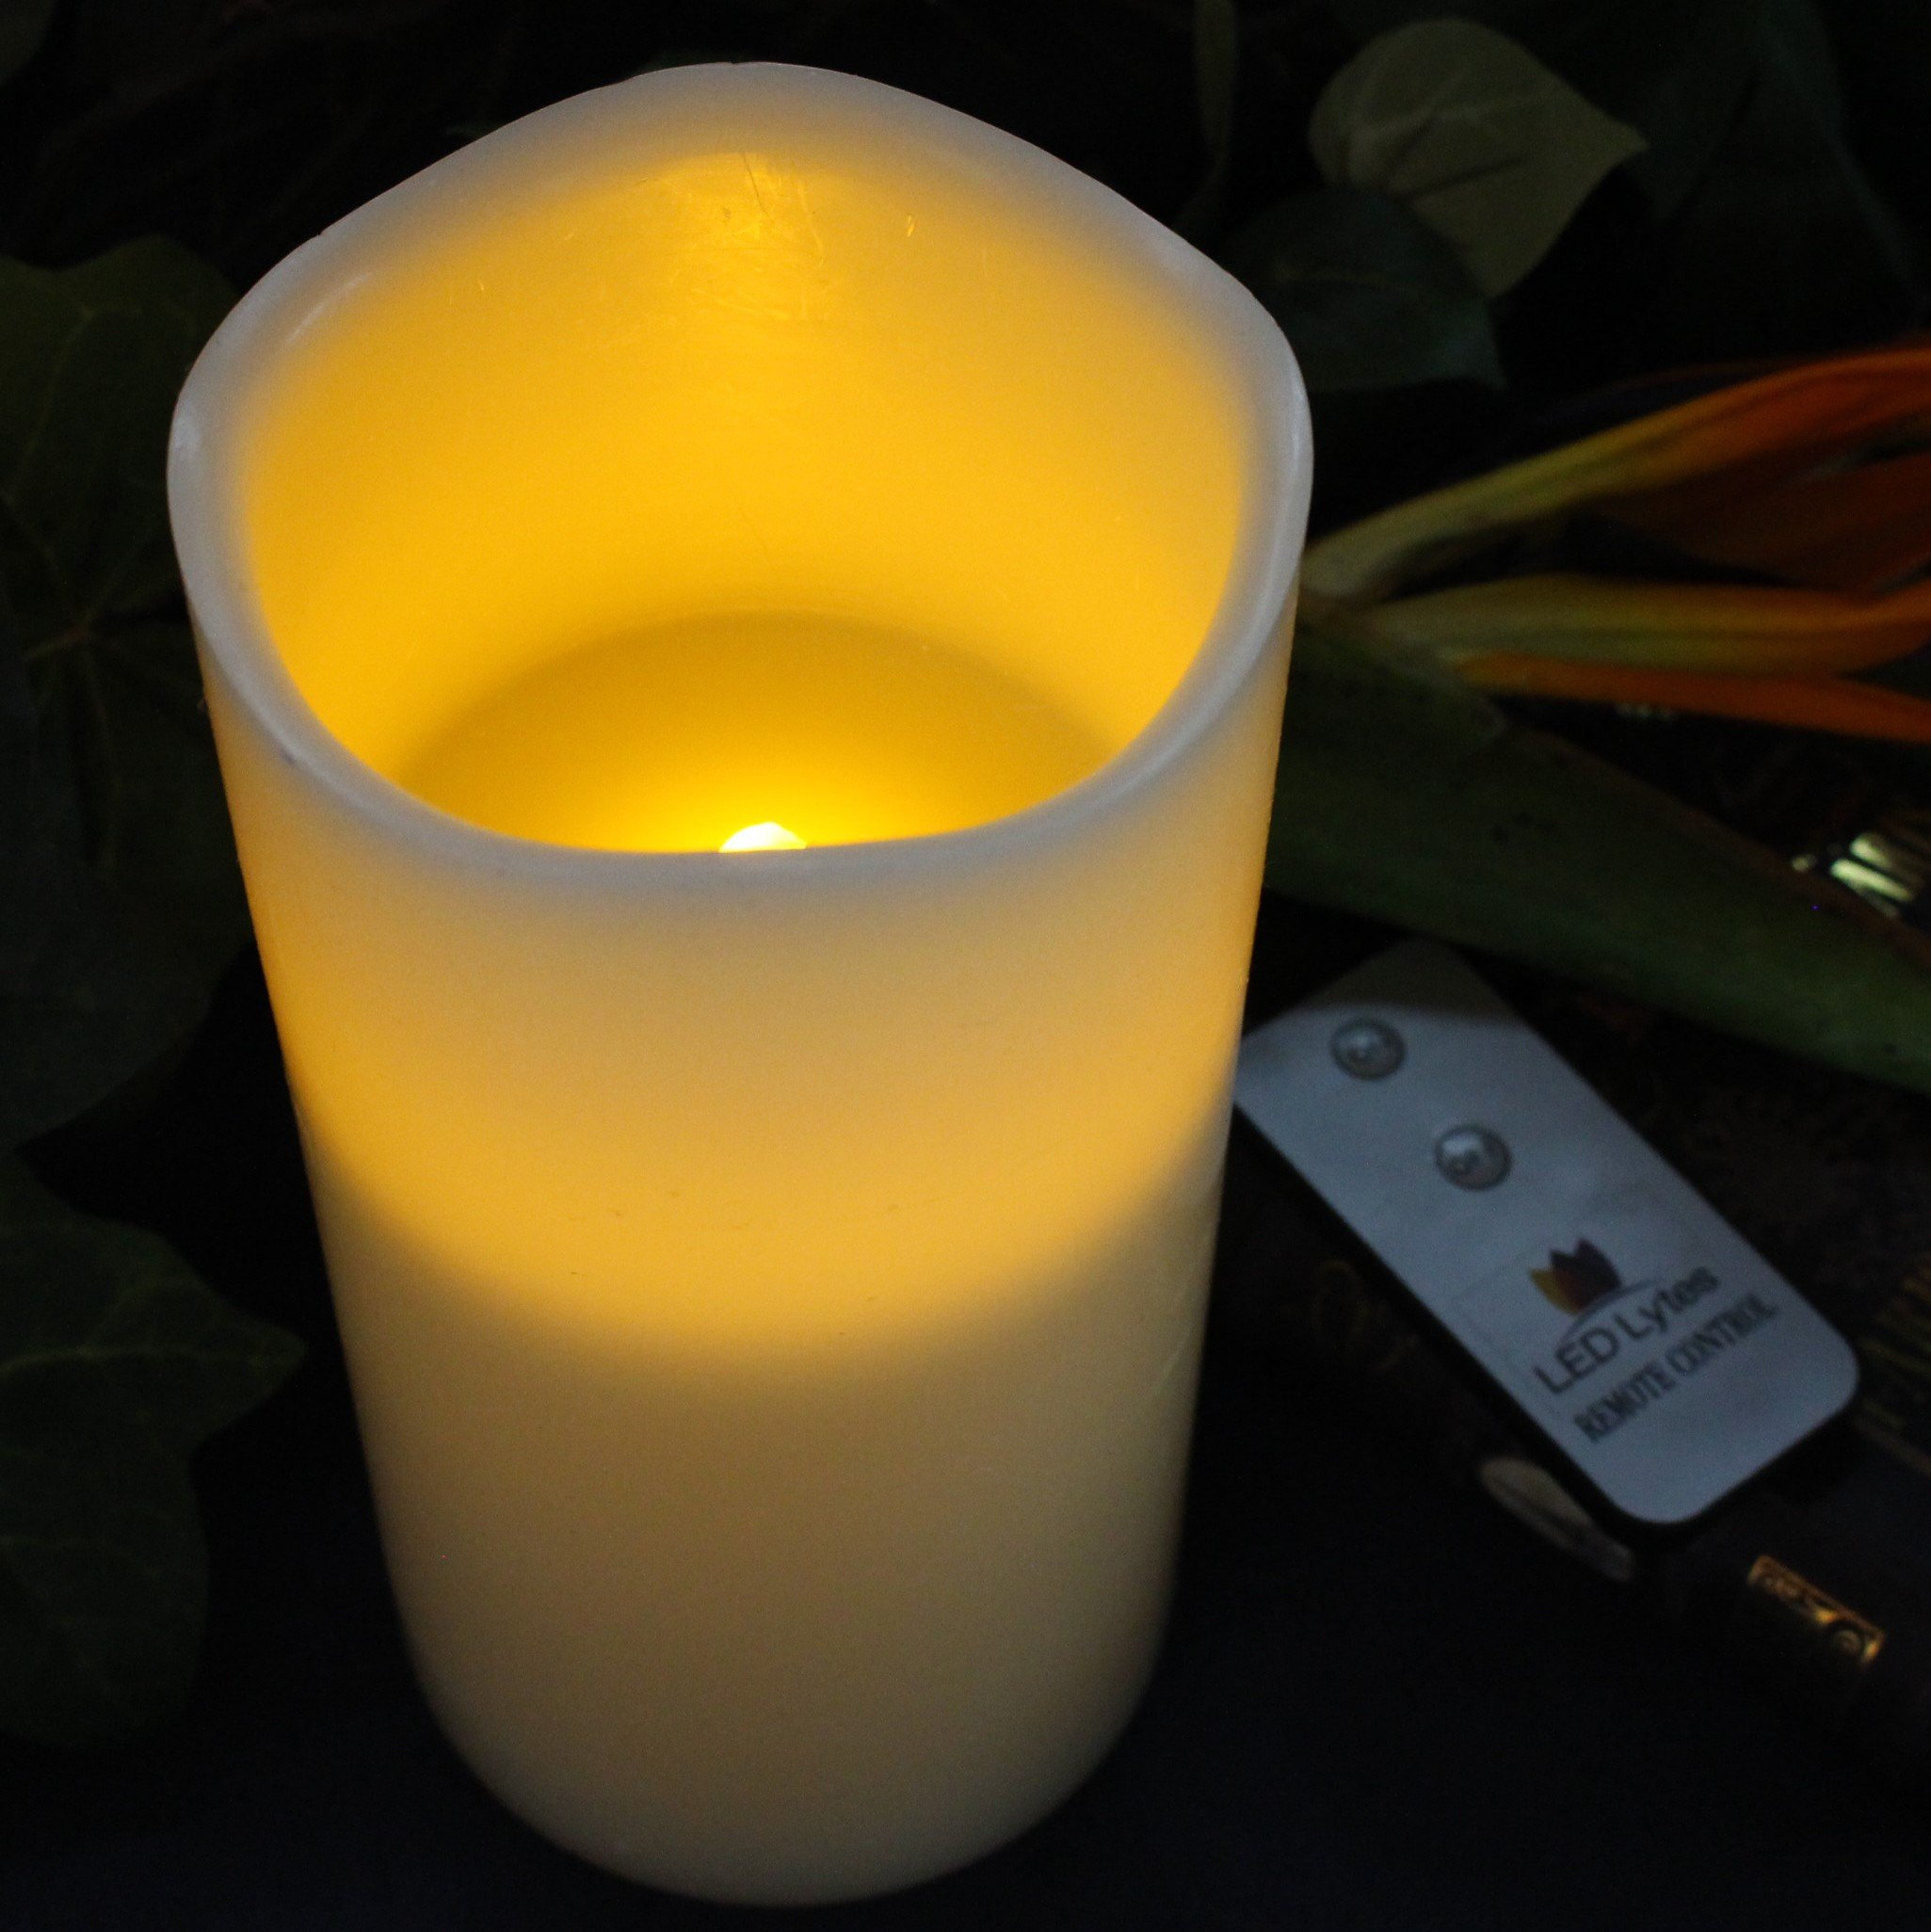 LED Lytes Flameless Candle Flickering - ONE Amber Yellow Pillar Battery Operated with Remote for Parties Weddings and Decorations by LED Lytes (Image #3)